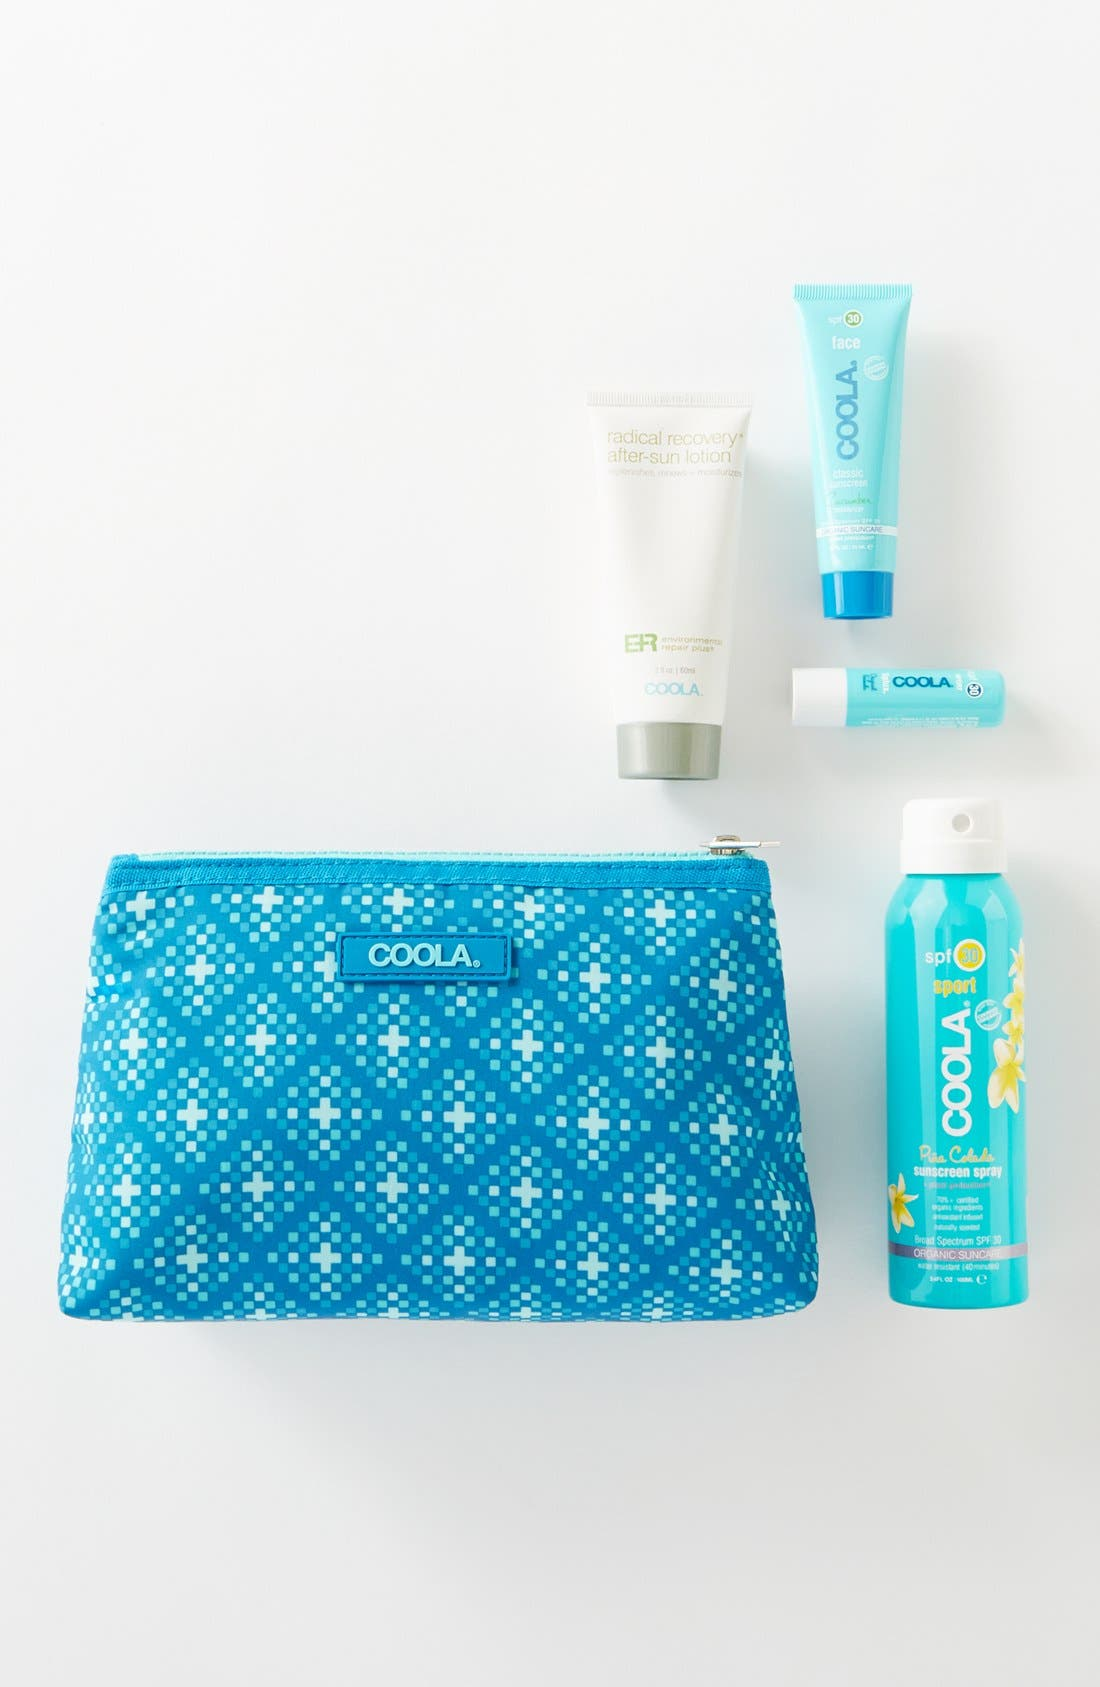 COOLA<sup>®</sup> Suncare Signature Travel Kit,                             Alternate thumbnail 3, color,                             NO COLOR